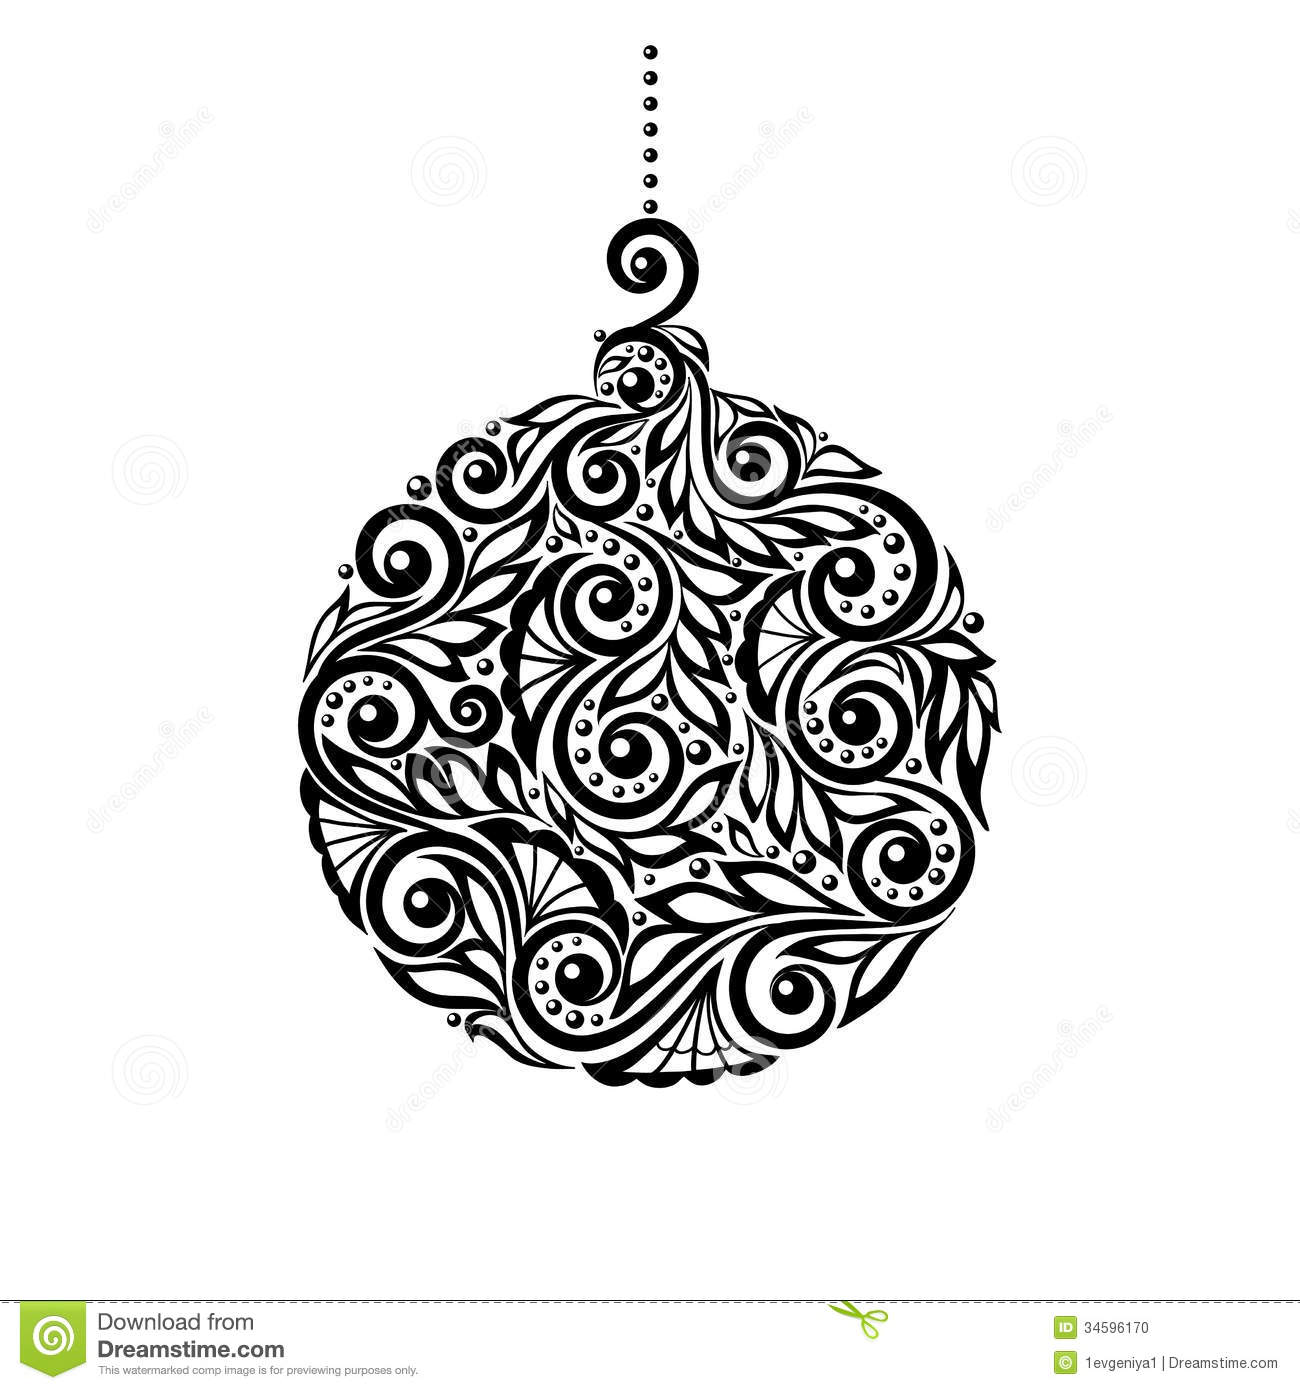 Black And White Christmas Ball With A Floral Desig Stock Vector